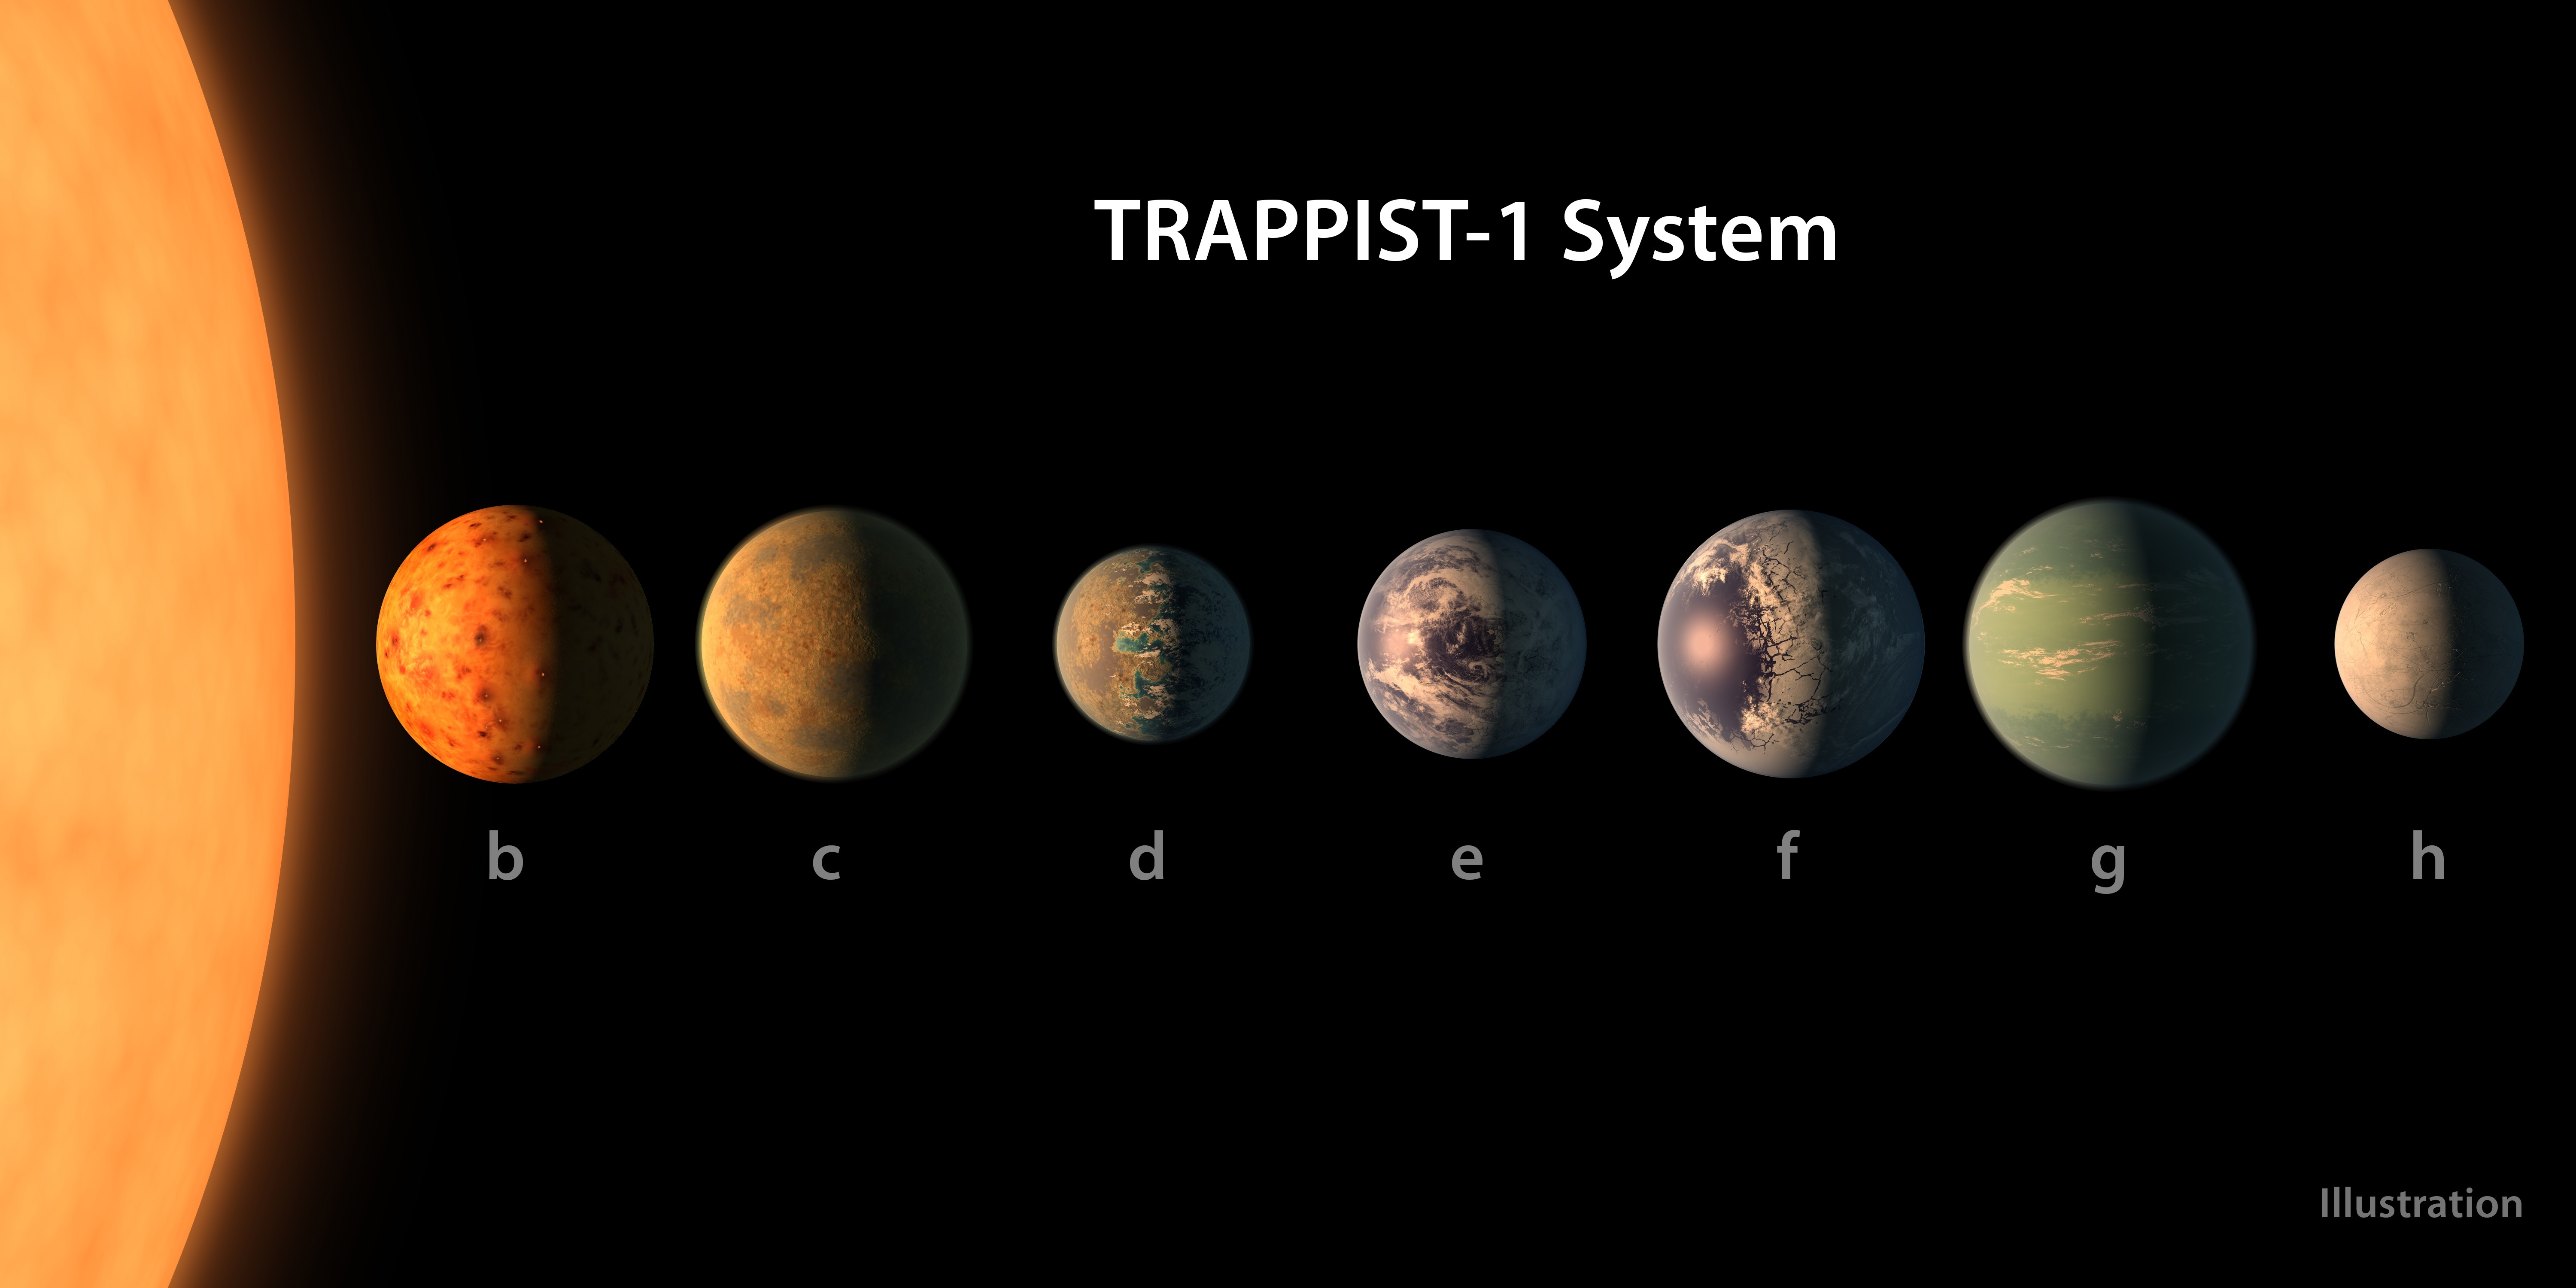 In an undated handout image, an artist's rendering of the seven planets that orbit the star named Trappist-1, in order of their distance from the star. Seven Earth-size planets that could potentially harbor life have been identified orbiting a tiny star not too far away, offering the first realistic opportunity to search for biological signs of alien life outside of the solar system. (NASA/JPL-Caltech via The New York Times)